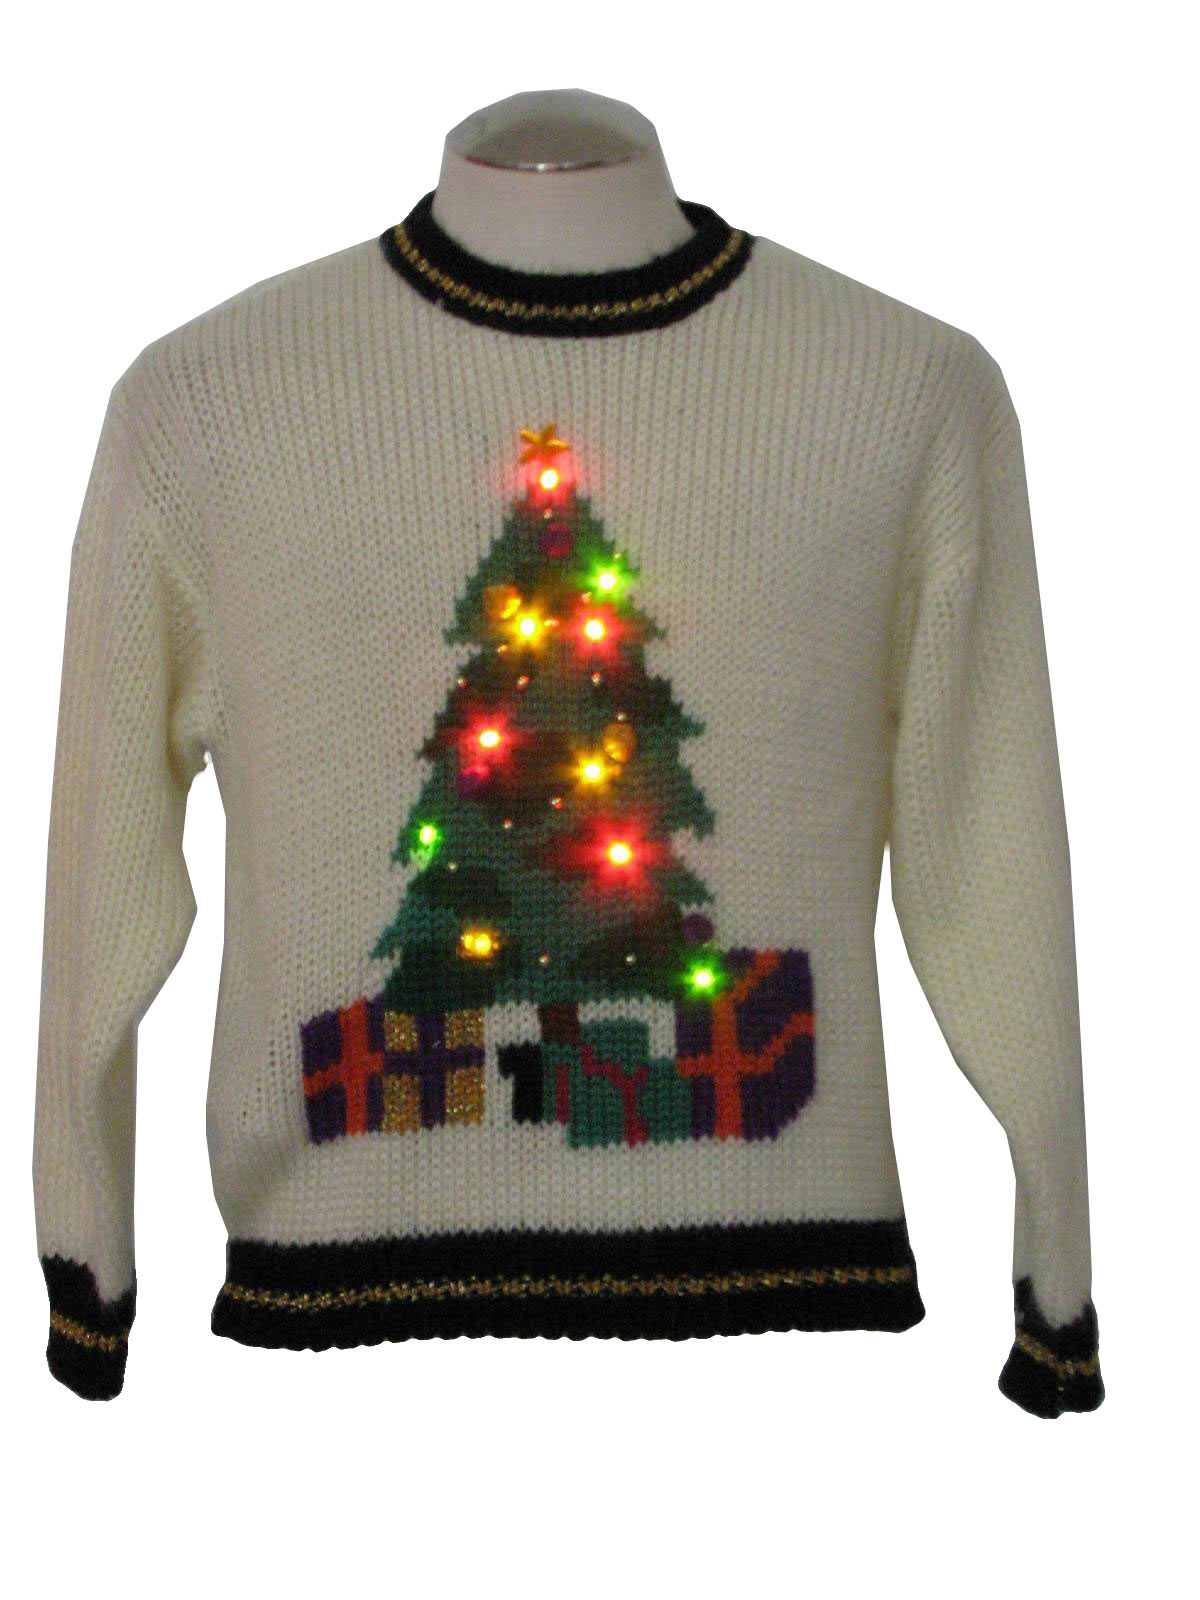 Find great deals on eBay for christmas sweater tree ornament. Shop with confidence.